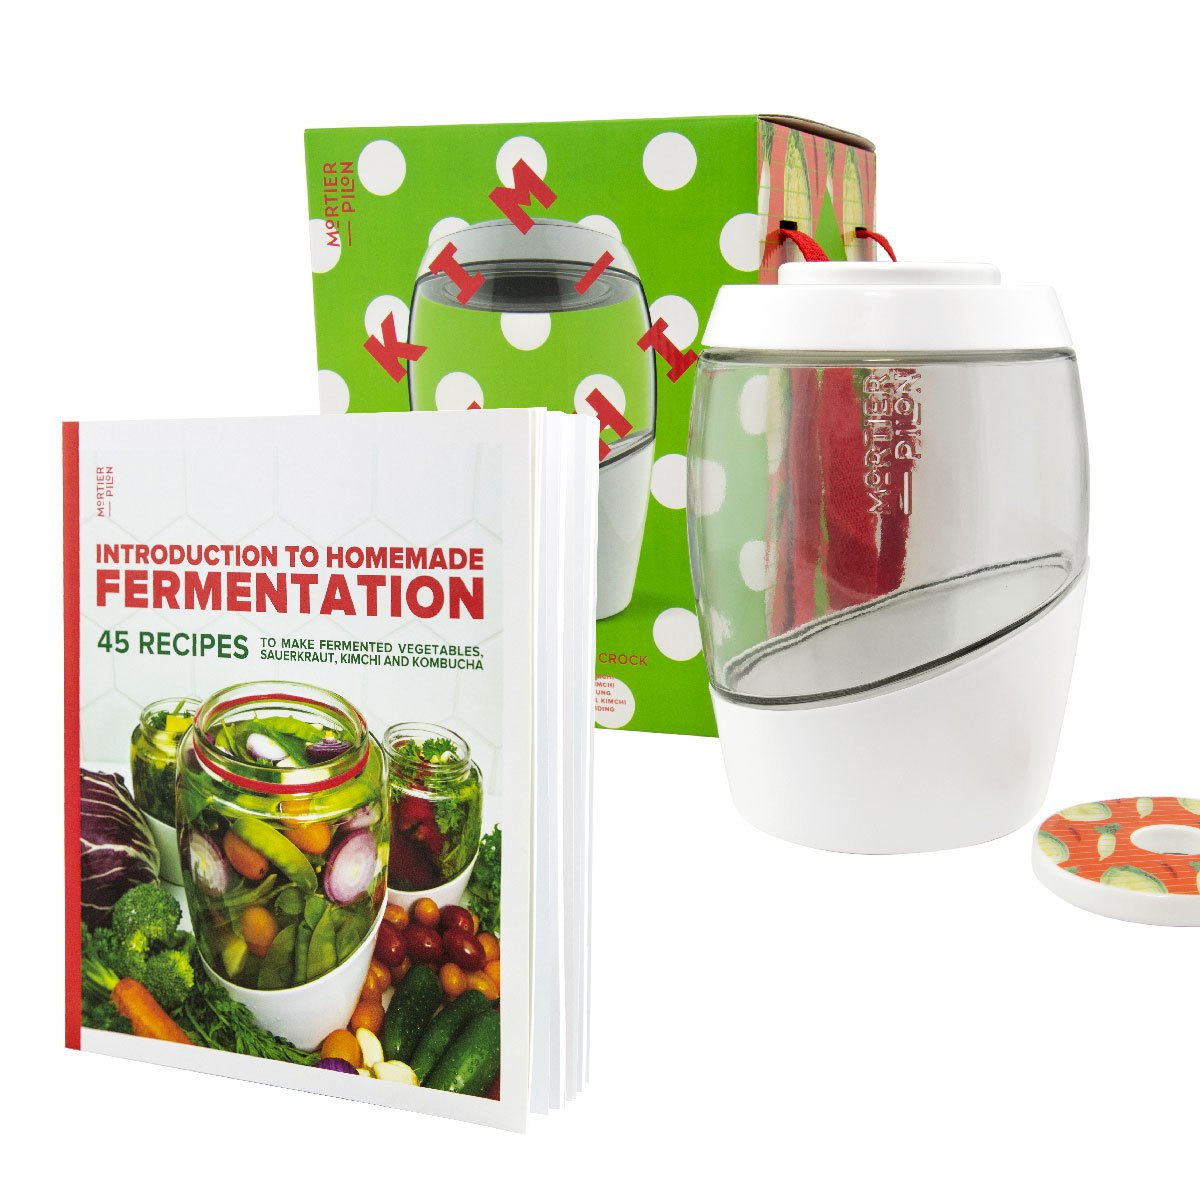 MORTIER PILON 2L Fermentation Crock Kimchi Edition + FREE Recipes Book - Perfect for making Healthy Fermented Foods at home | 2L Fermentation Jar with Ceramic Weights